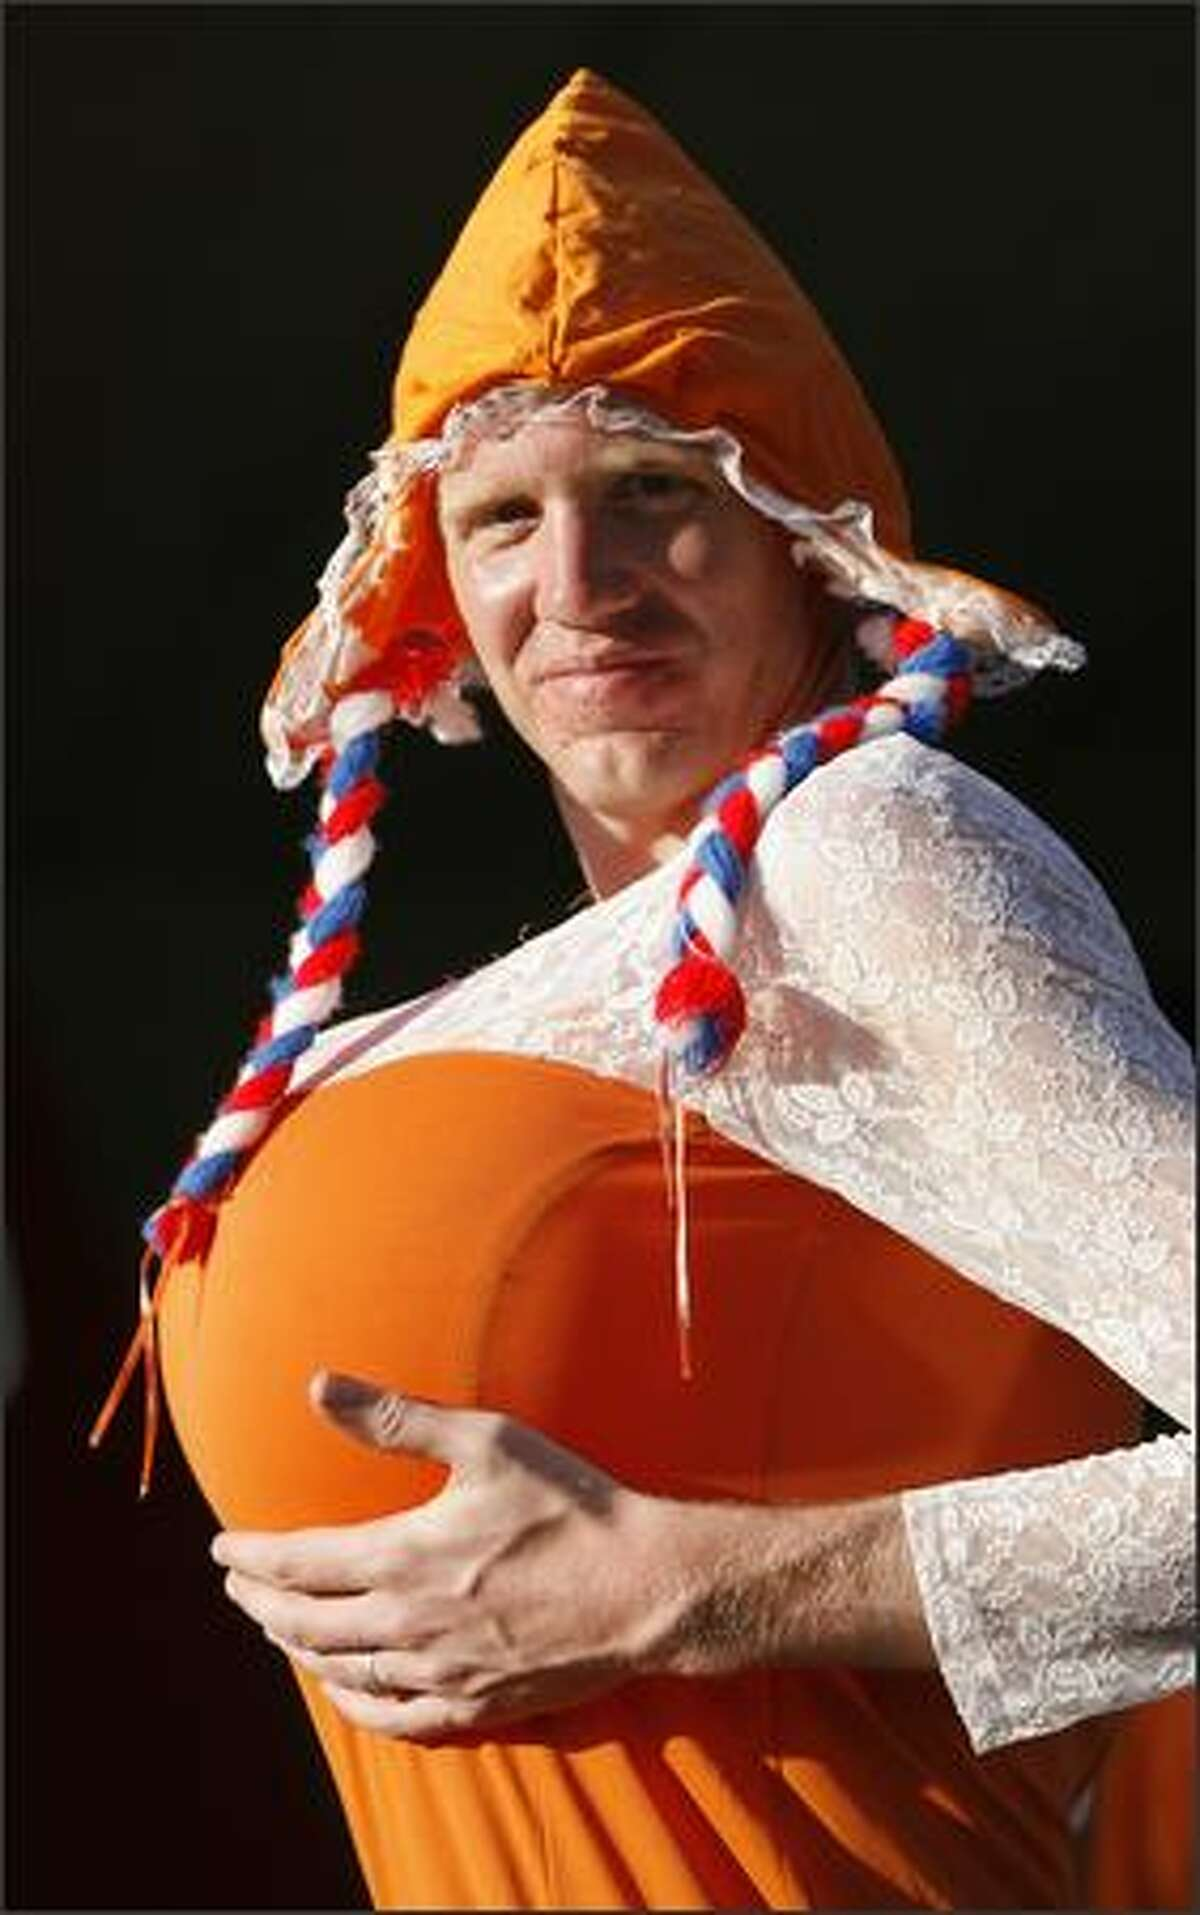 A Dutch fan is seen prior to the quarterfinal match between the Netherlands and Russia in Basel, Switzerland at the Euro 2008 European Soccer Championships in Austria and Switzerland. (AP Photo/Peter Klaunzer)